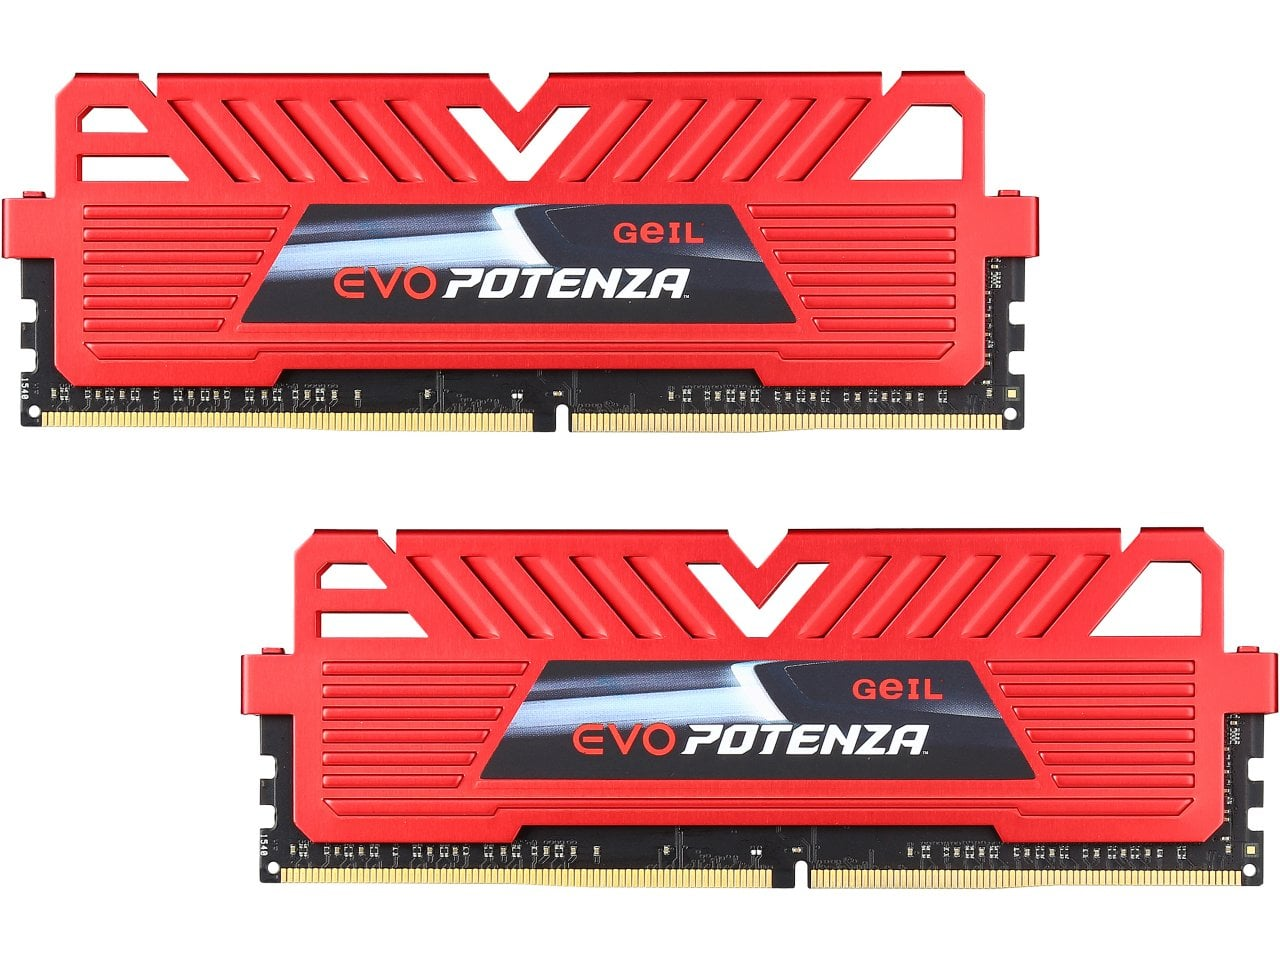 16 GB (2 x 8 GB) GeIL EVO POTENZA 288-Pin DDR4 2400 Desktop Memory for $48.99, 16 GB (2 x 8 GB) G.SKILL Ripjaws V 288-Pin DDR4 3000 Desktop Memory for $59.99 & More @ Newegg.com